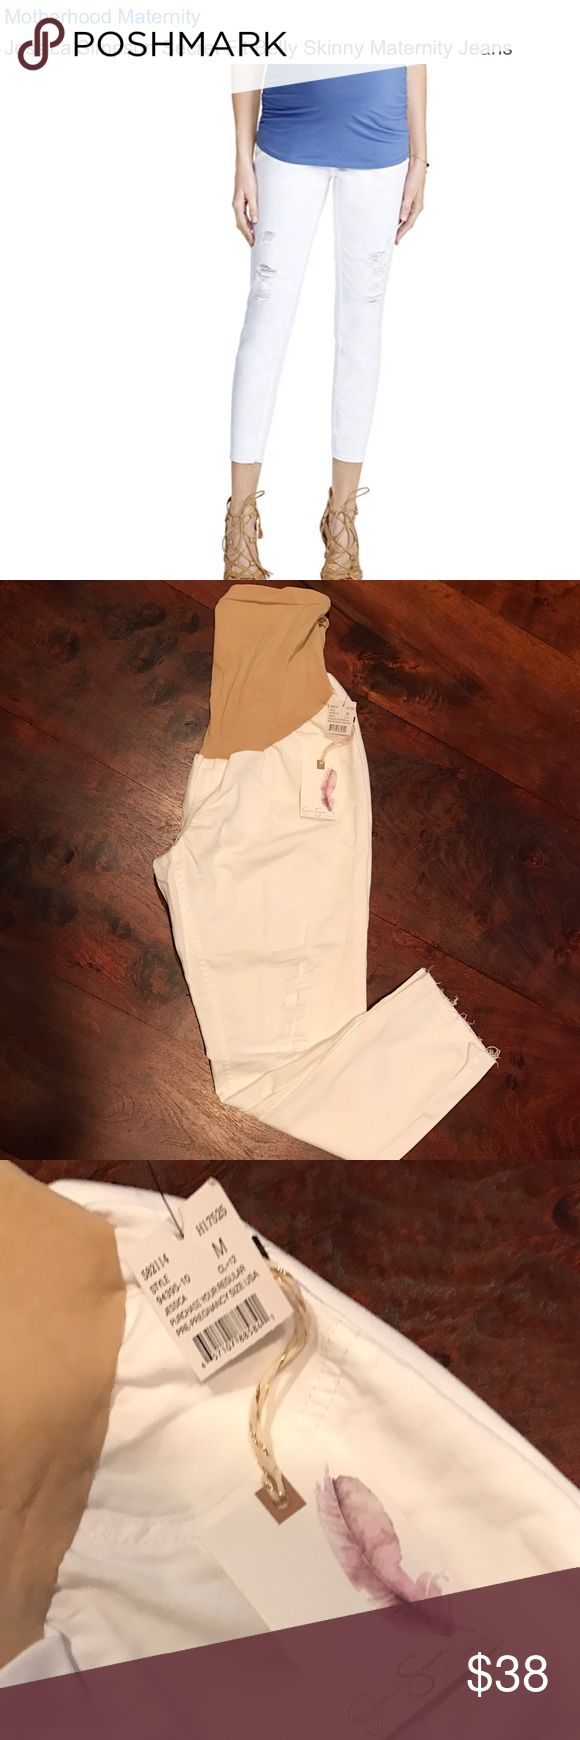 Jessica Simpson Maternity Pants Super cute maternity pants!! Brand new with tags still attached!  Jessica Simpson Pants Ankle & Cropped